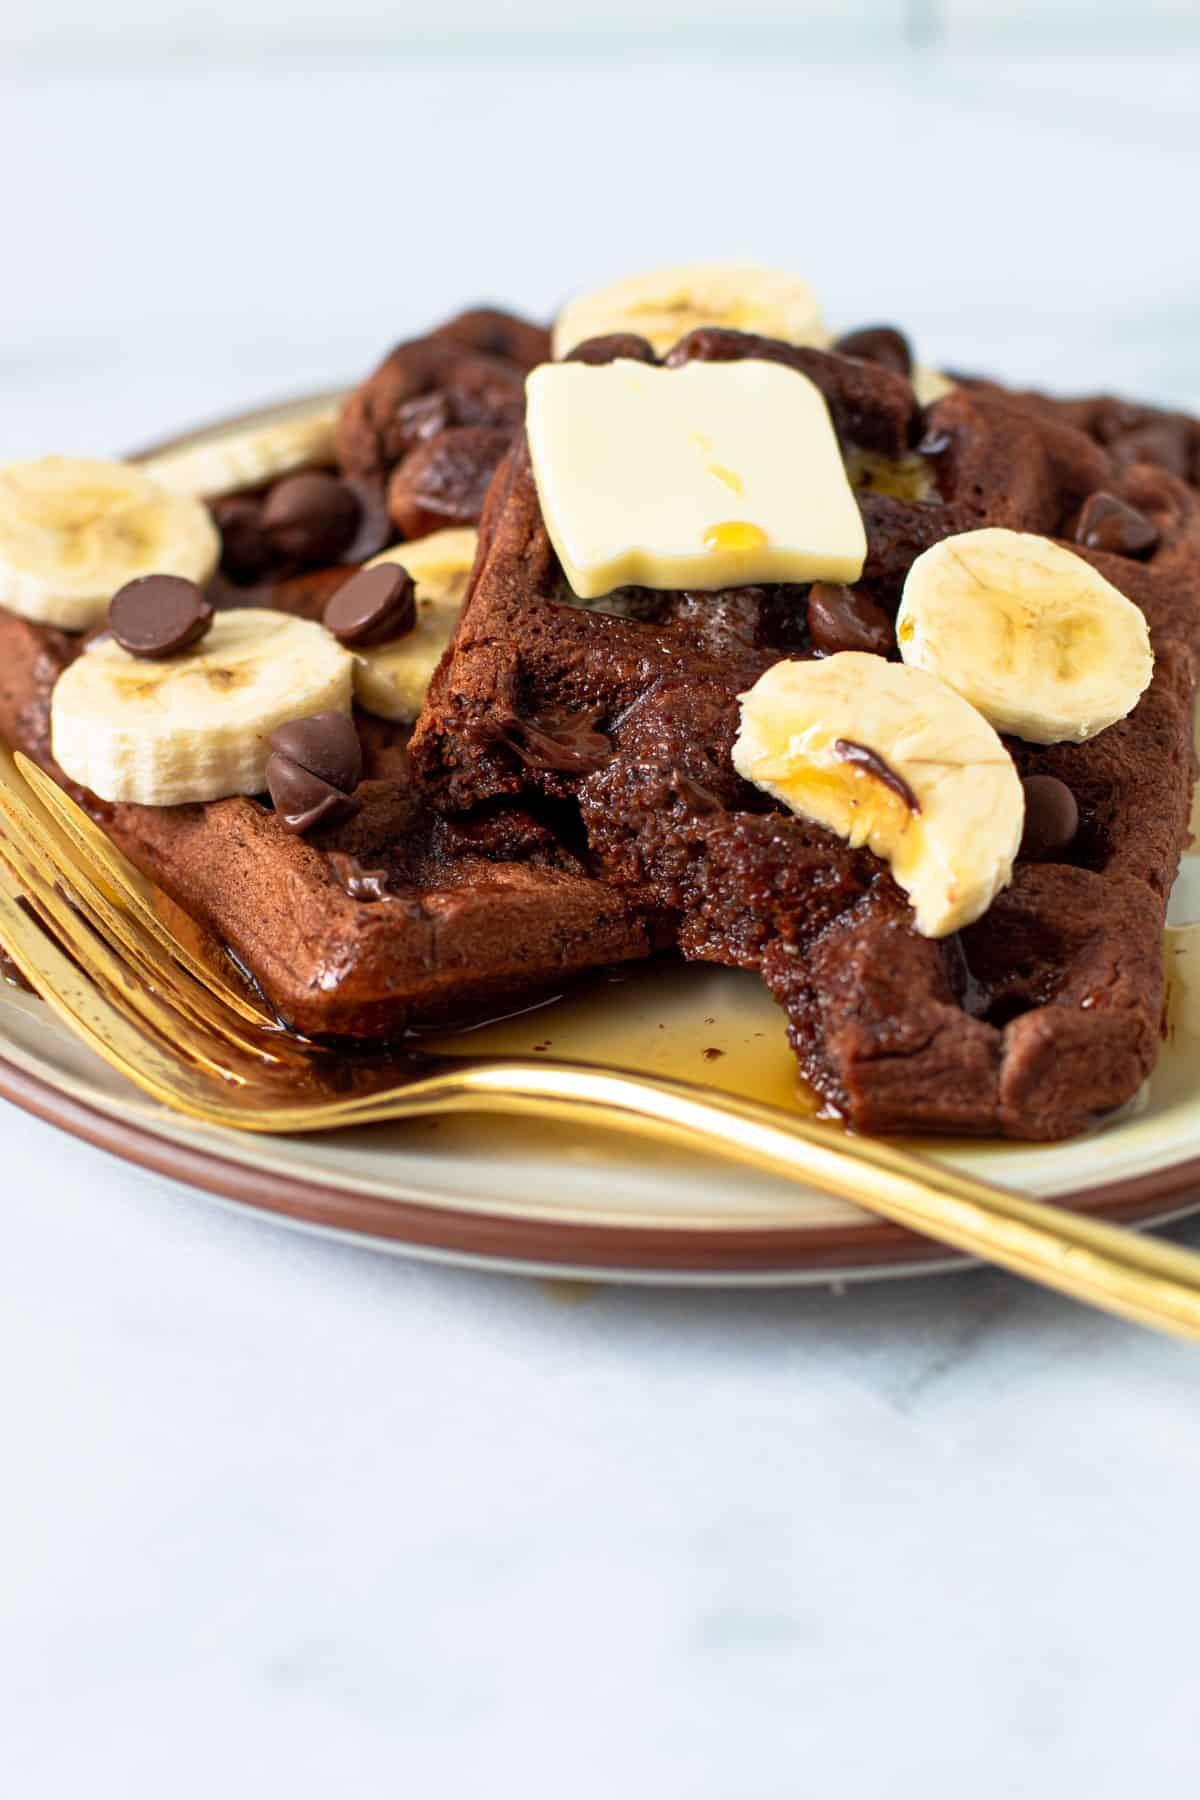 Chocolate waffles on a plate with butter and bananas.